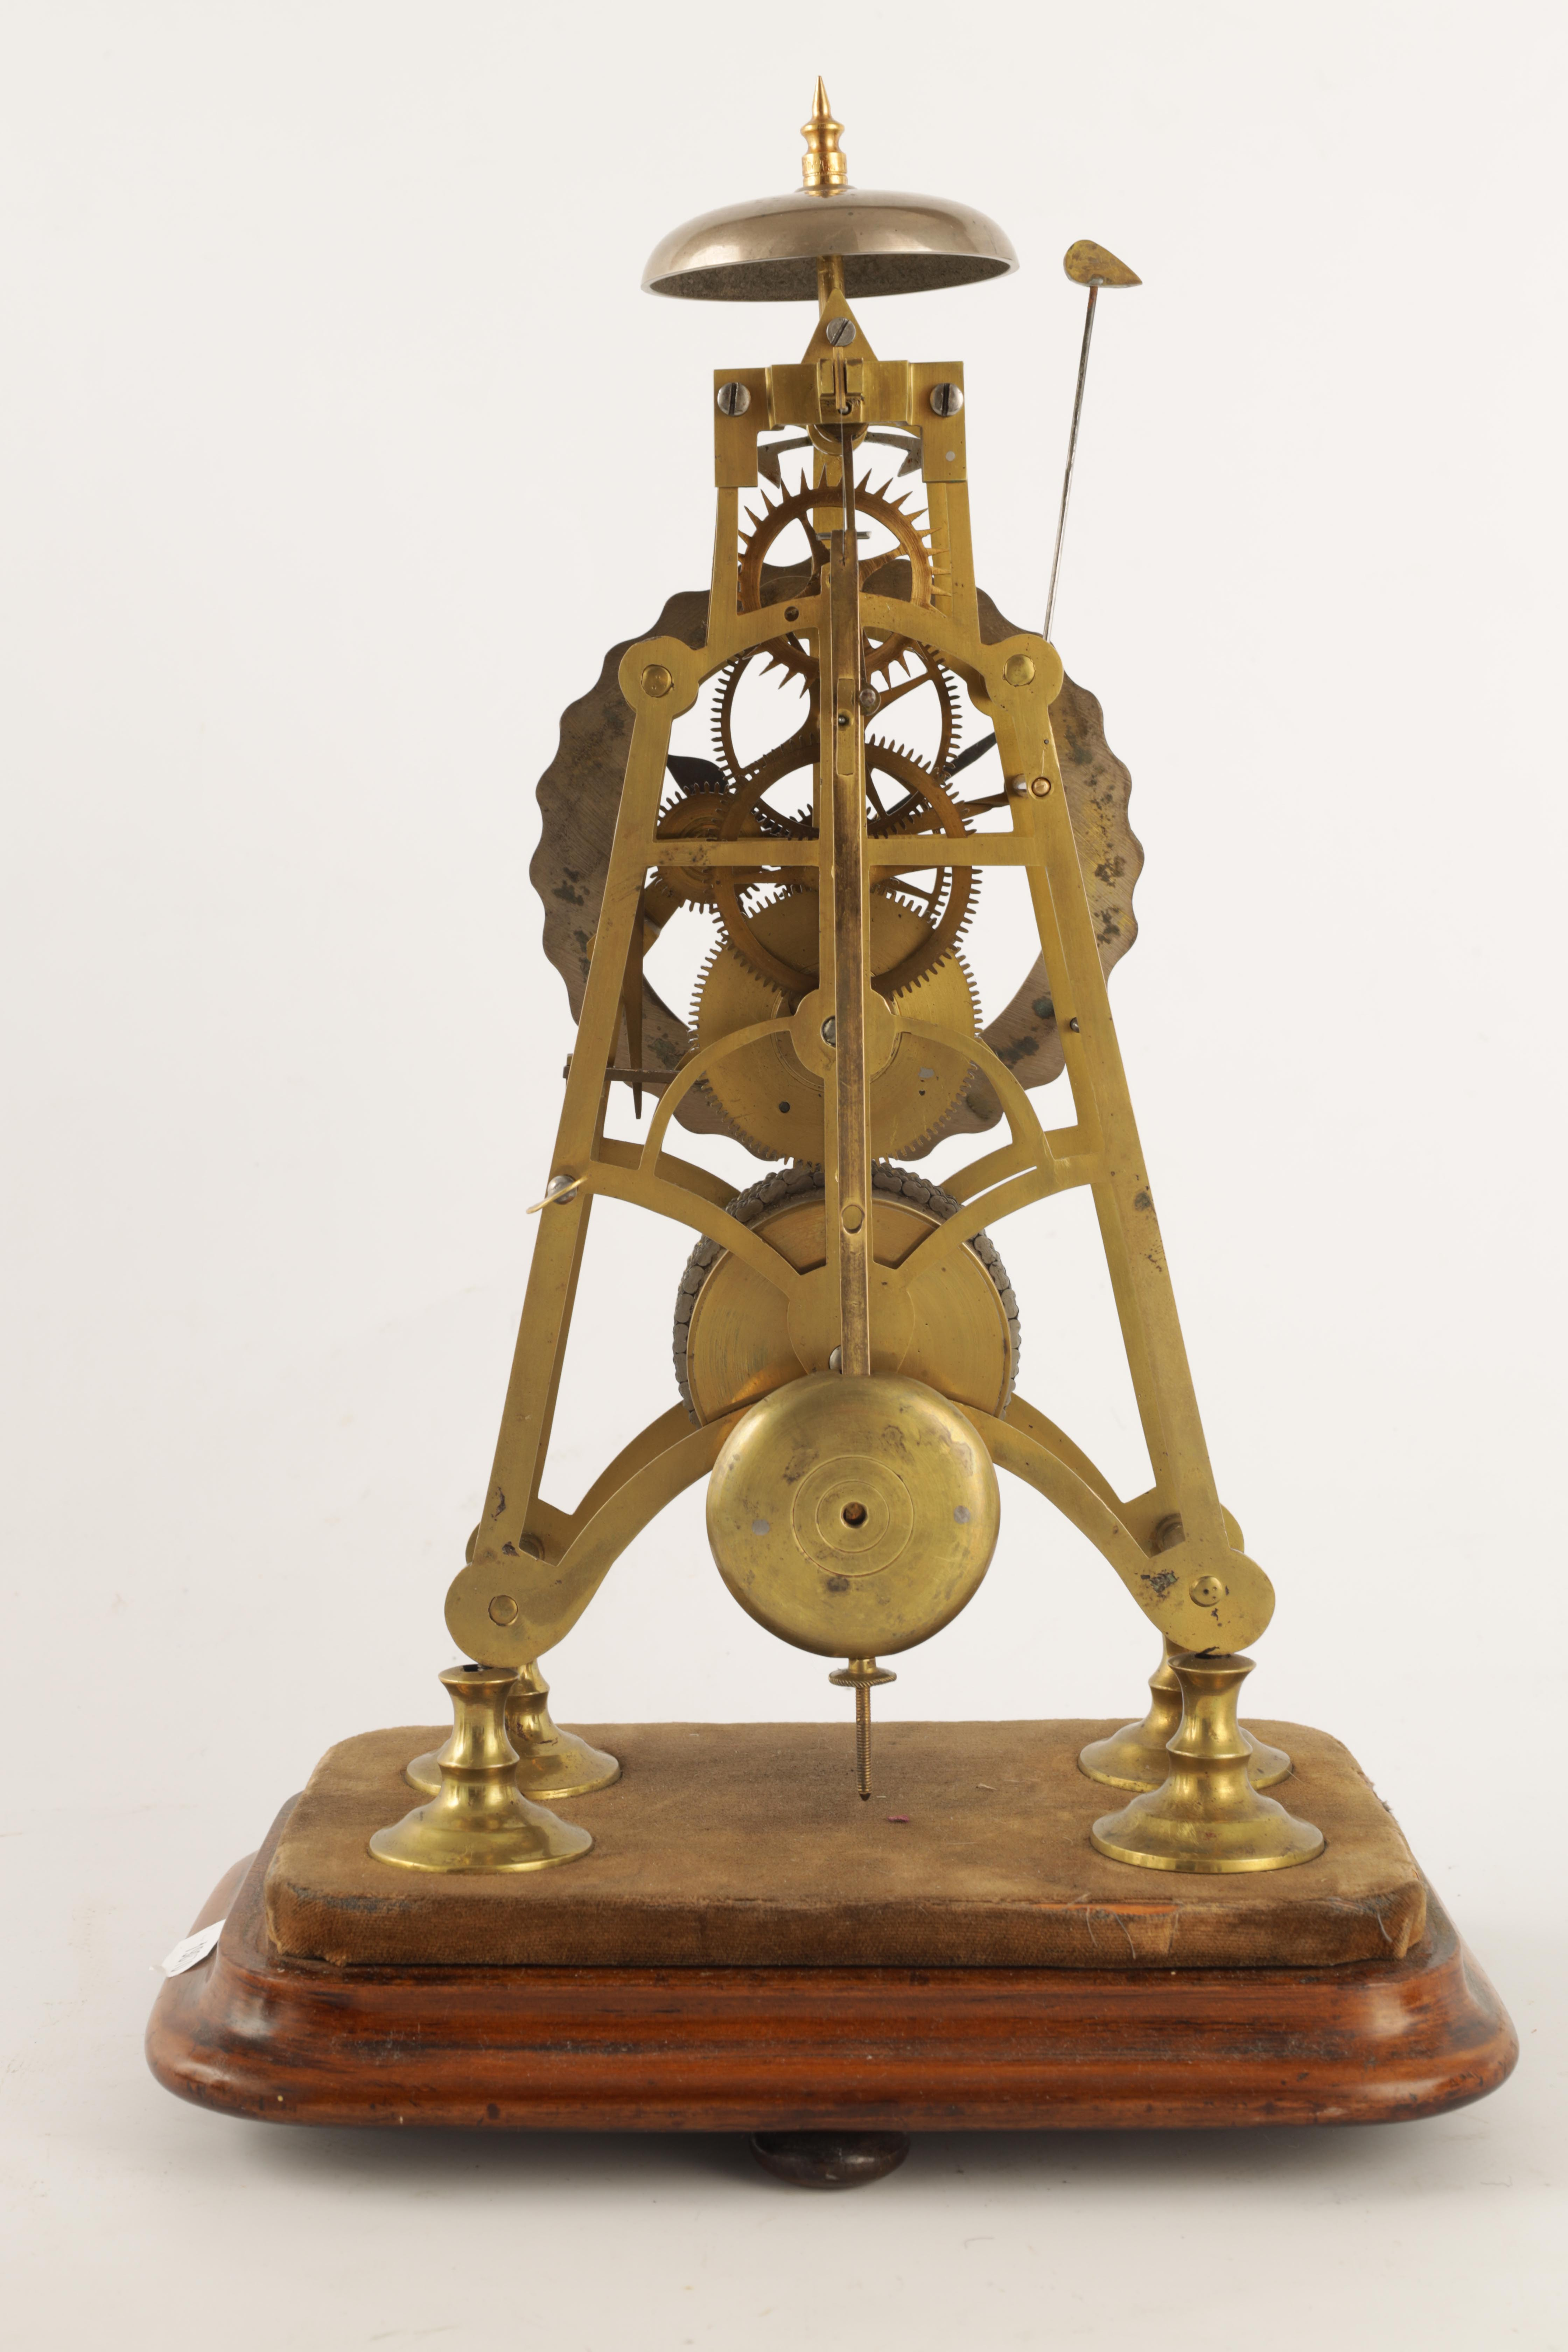 A 19TH CENTURY 8-DAY FUSEE TIMEPIECE SKELETON CLOCK with passing hour bell strike, tapering plates - Image 5 of 6